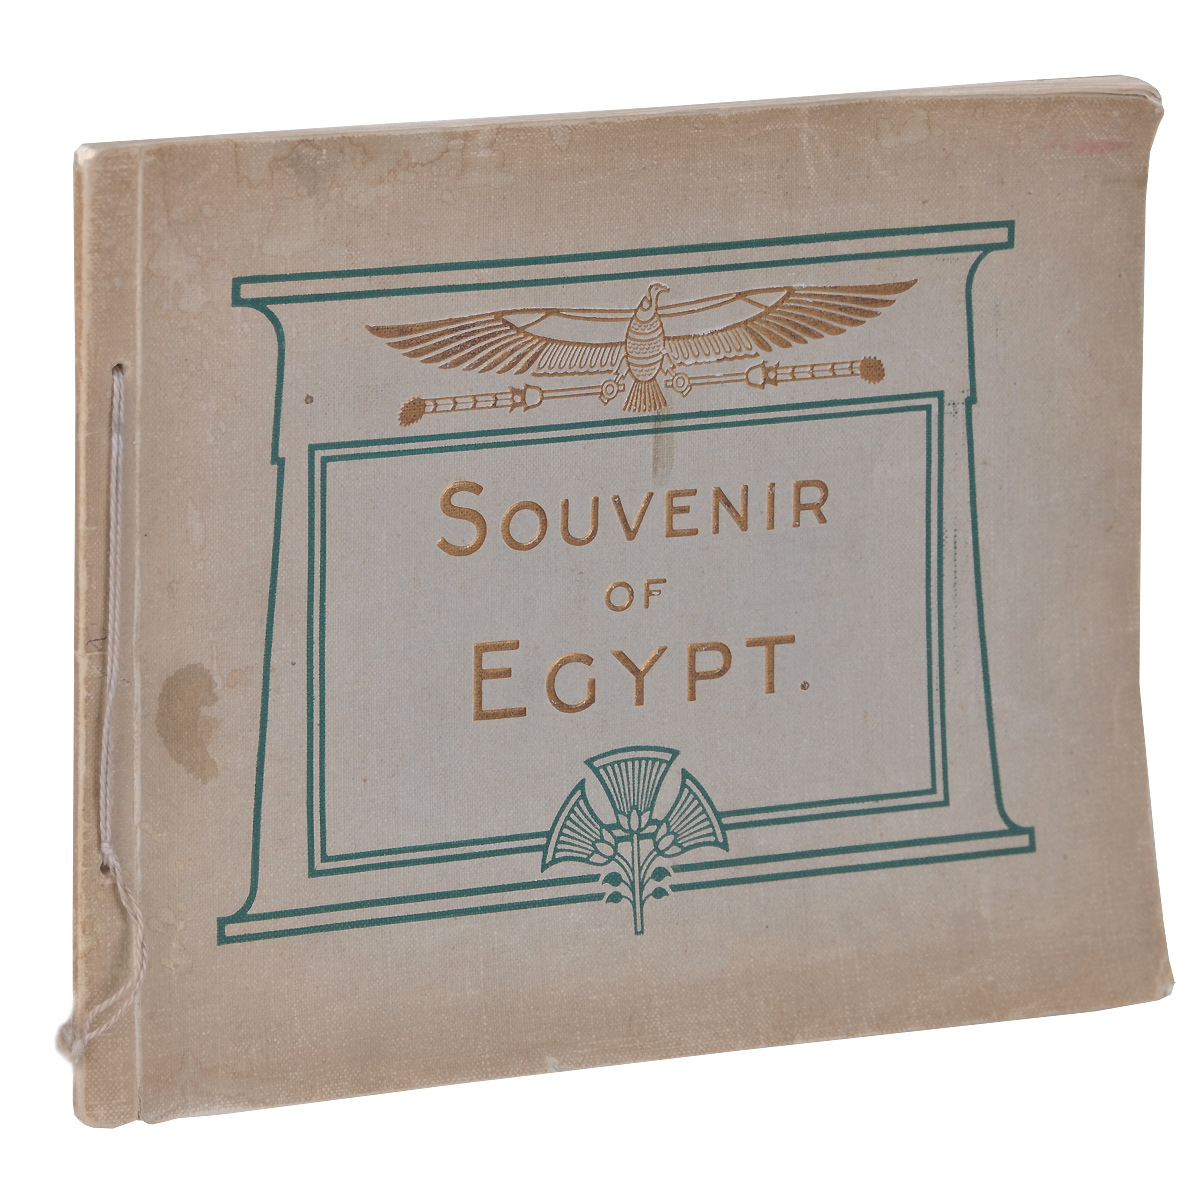 Souvenir of EgyptZМ5000Лондон, 1920 год. Tillotson Press. Издательский переплет. Сохранена оригинальная обложка. Сохранность хорошая.Album Souvenir of Egypt contains 70 illustrations of Lower and Upper Egypt. Including all the principal views of places of interest on the Nile.Издание не подлежит вывозу за пределы Российской Федерации.